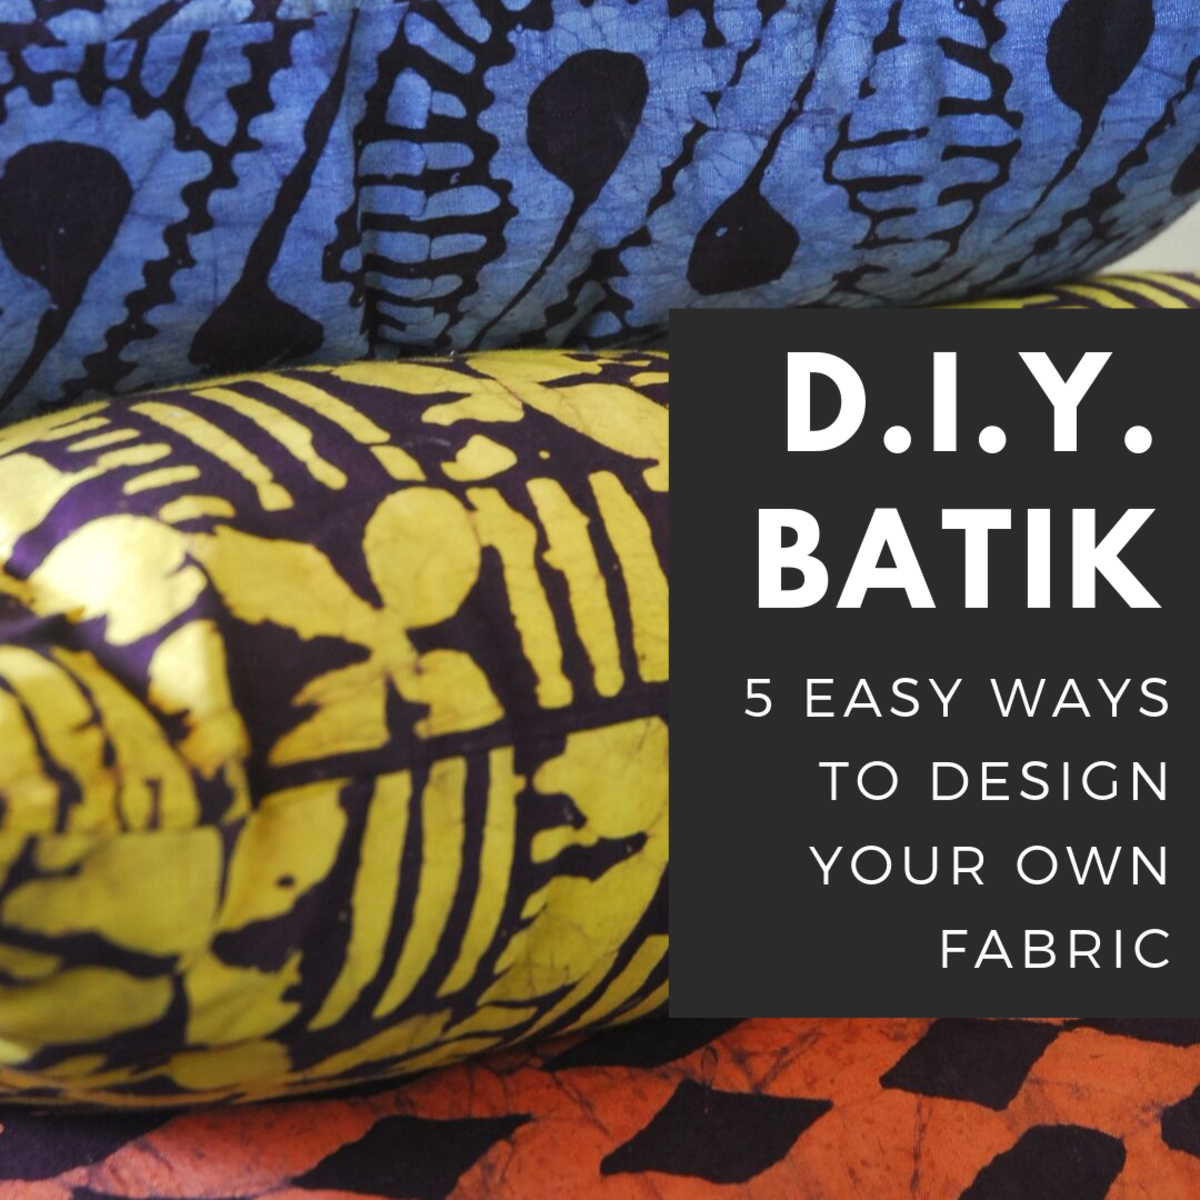 These beginner methods will help you create your own unique fabric designs.